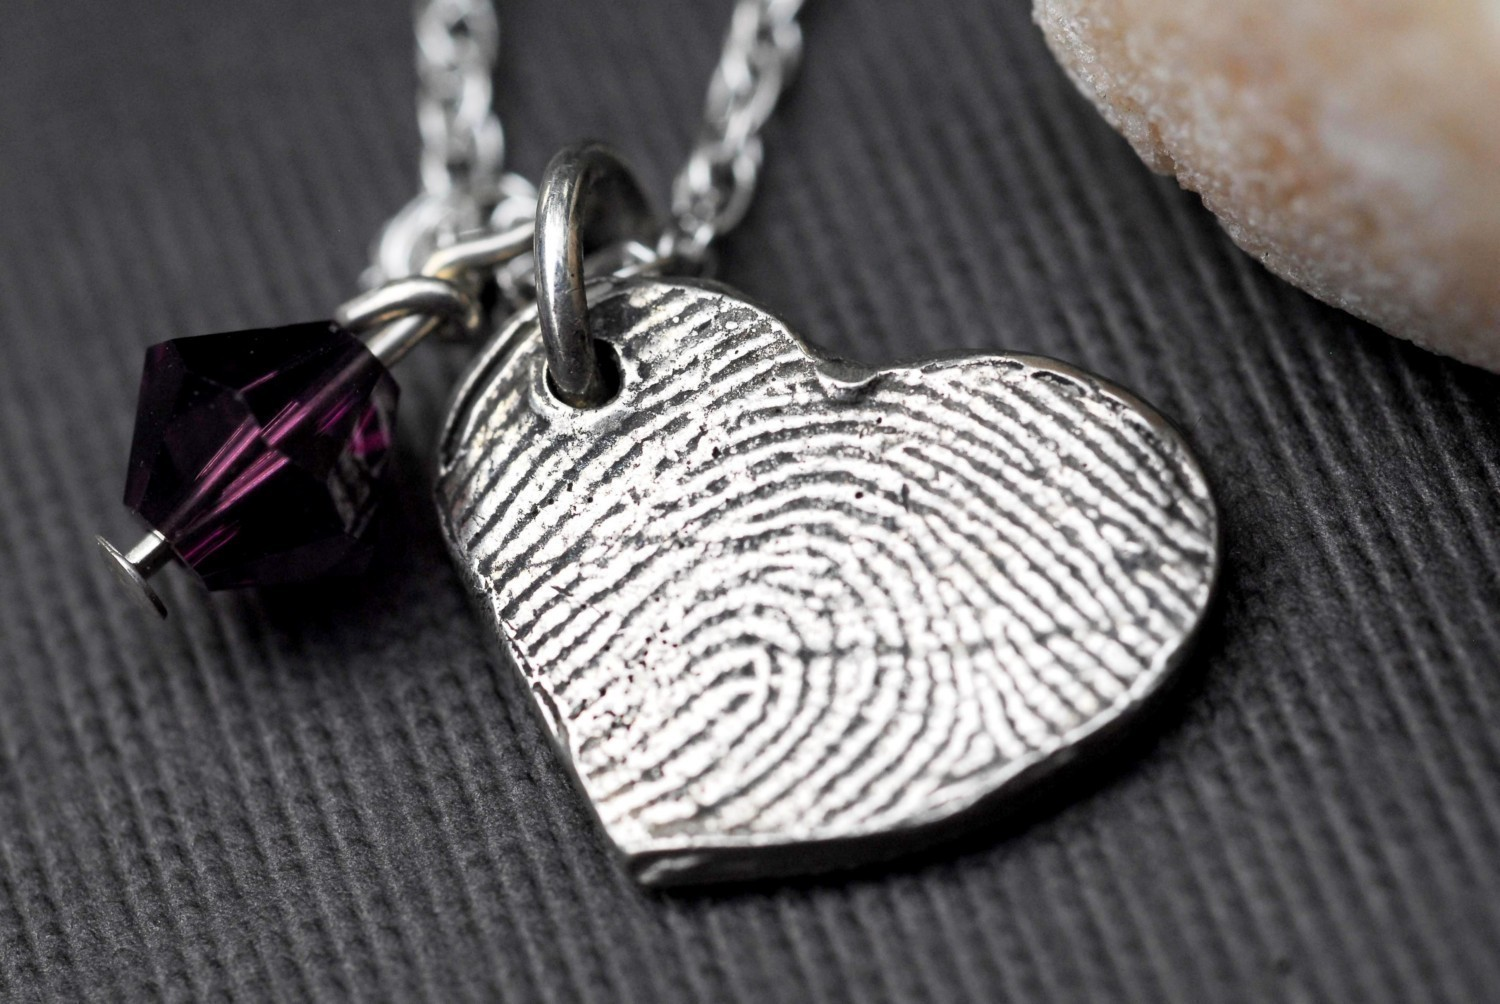 Wear metal clay fingerprint jewellery in uk fingerprint jewellery actually this type of jewellery is made to order by the craftsman and are handmade the special precious metal clay that is the mouldable material used to solutioingenieria Choice Image